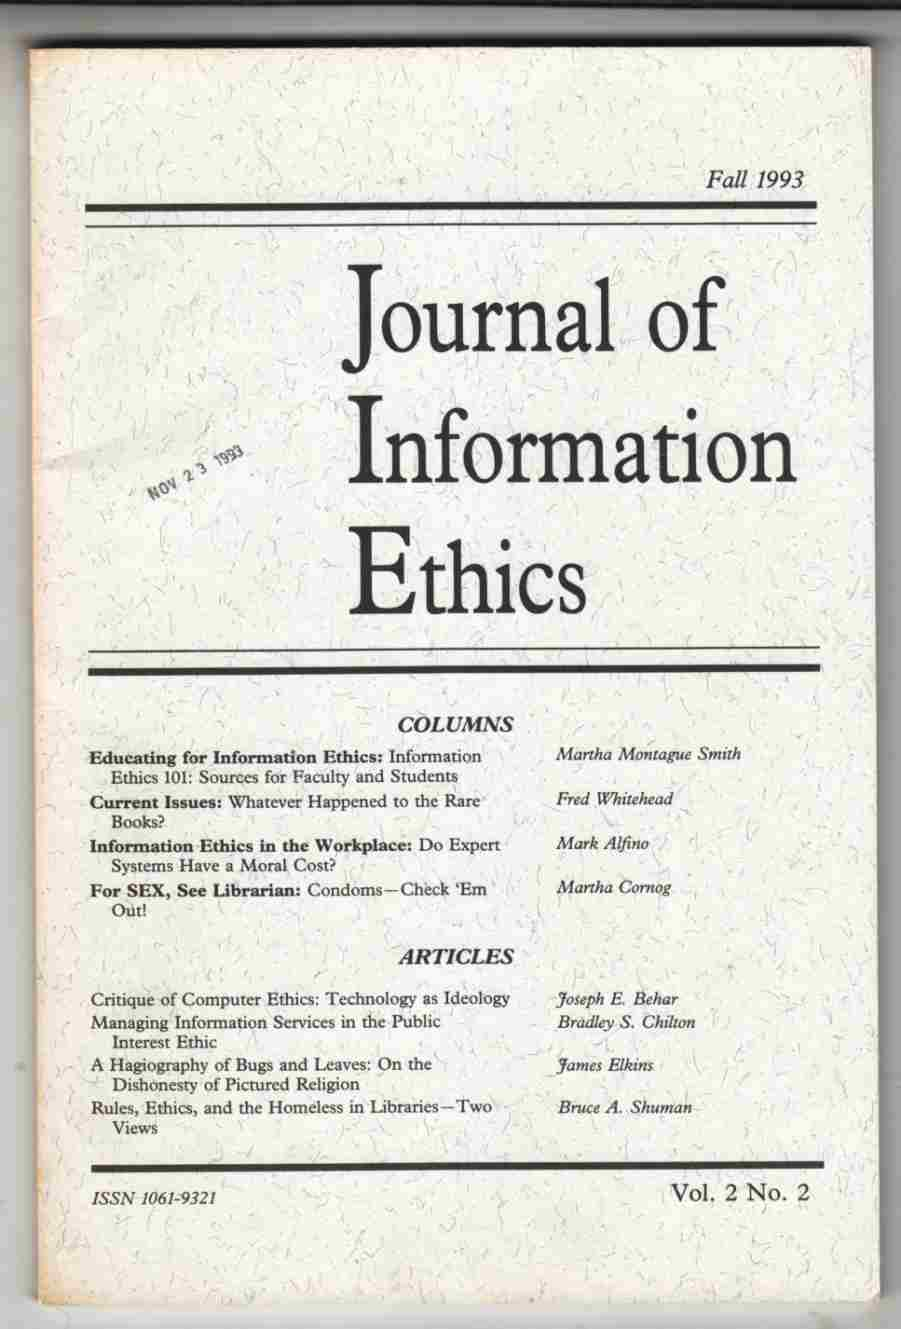 Image for Journal of Information Ethics Fall 1993 Vol. 2. No. 2